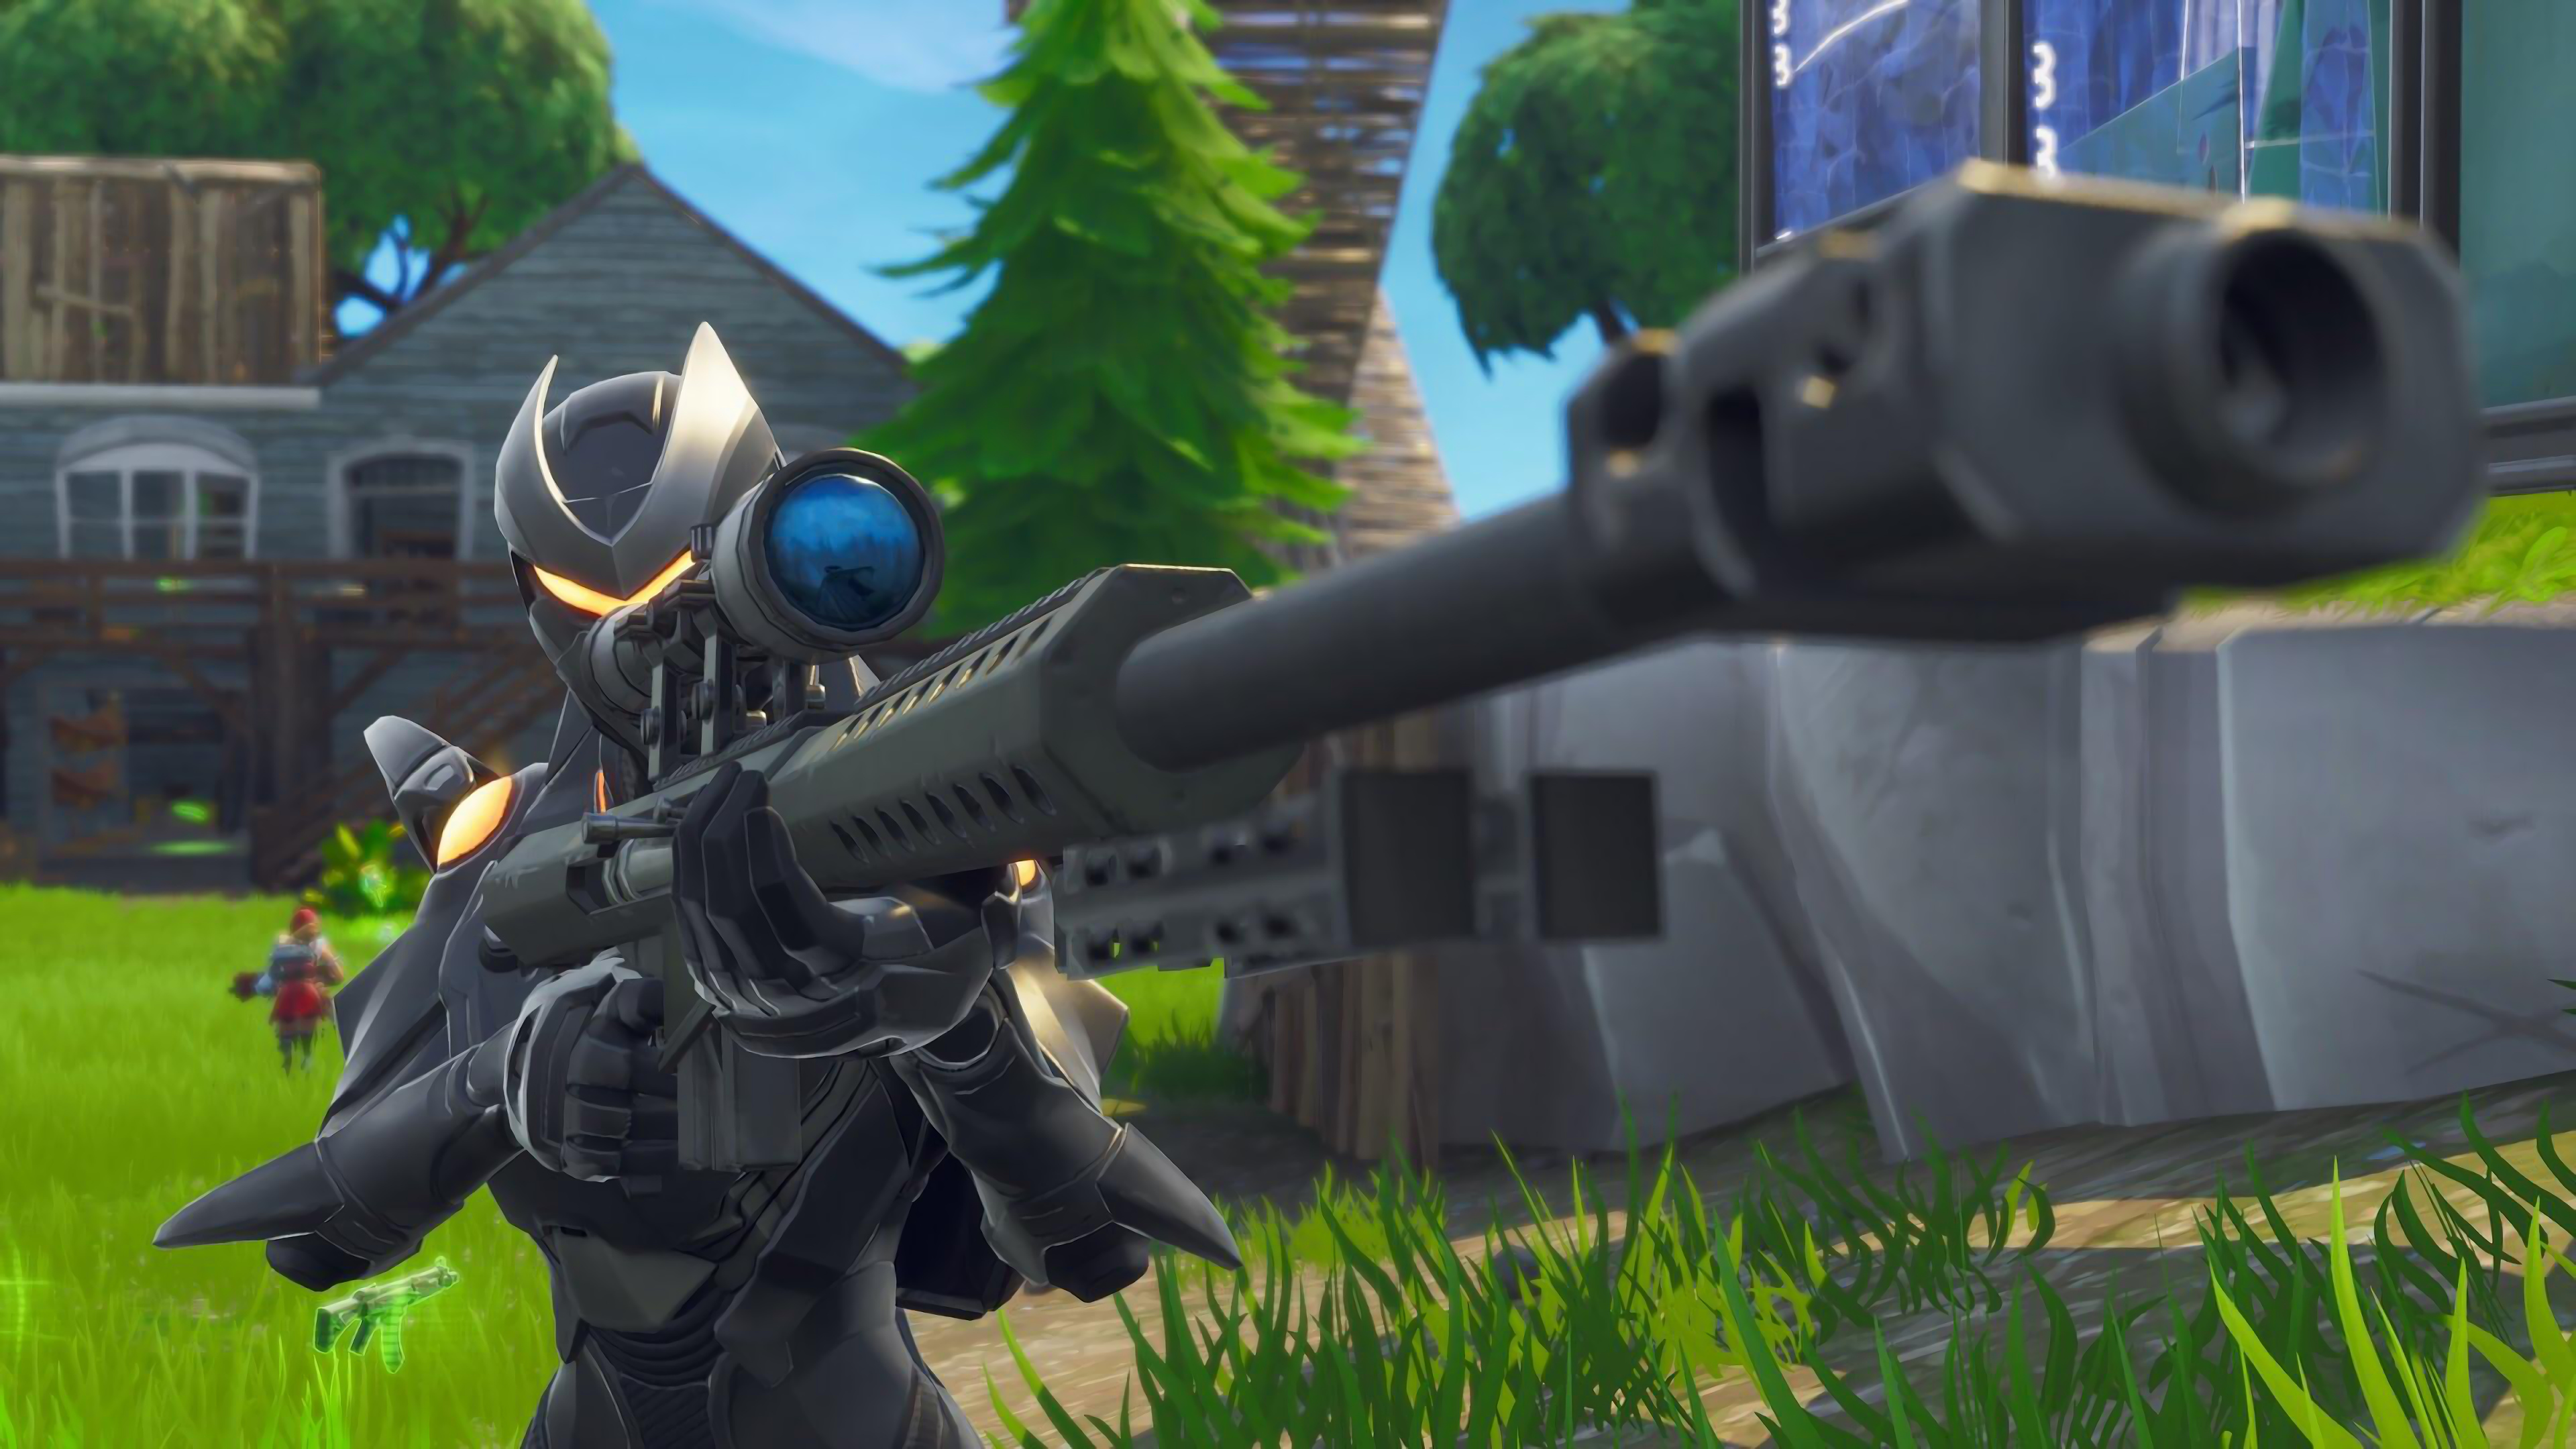 oblivion fortnite season 6 4k 1540982548 - Oblivion Fortnite Season 6 4K - ps games wallpapers, hd-wallpapers, games wallpapers, fortnite wallpapers, fortnite season 6 wallpapers, 4k-wallpapers, 2018 games wallpapers